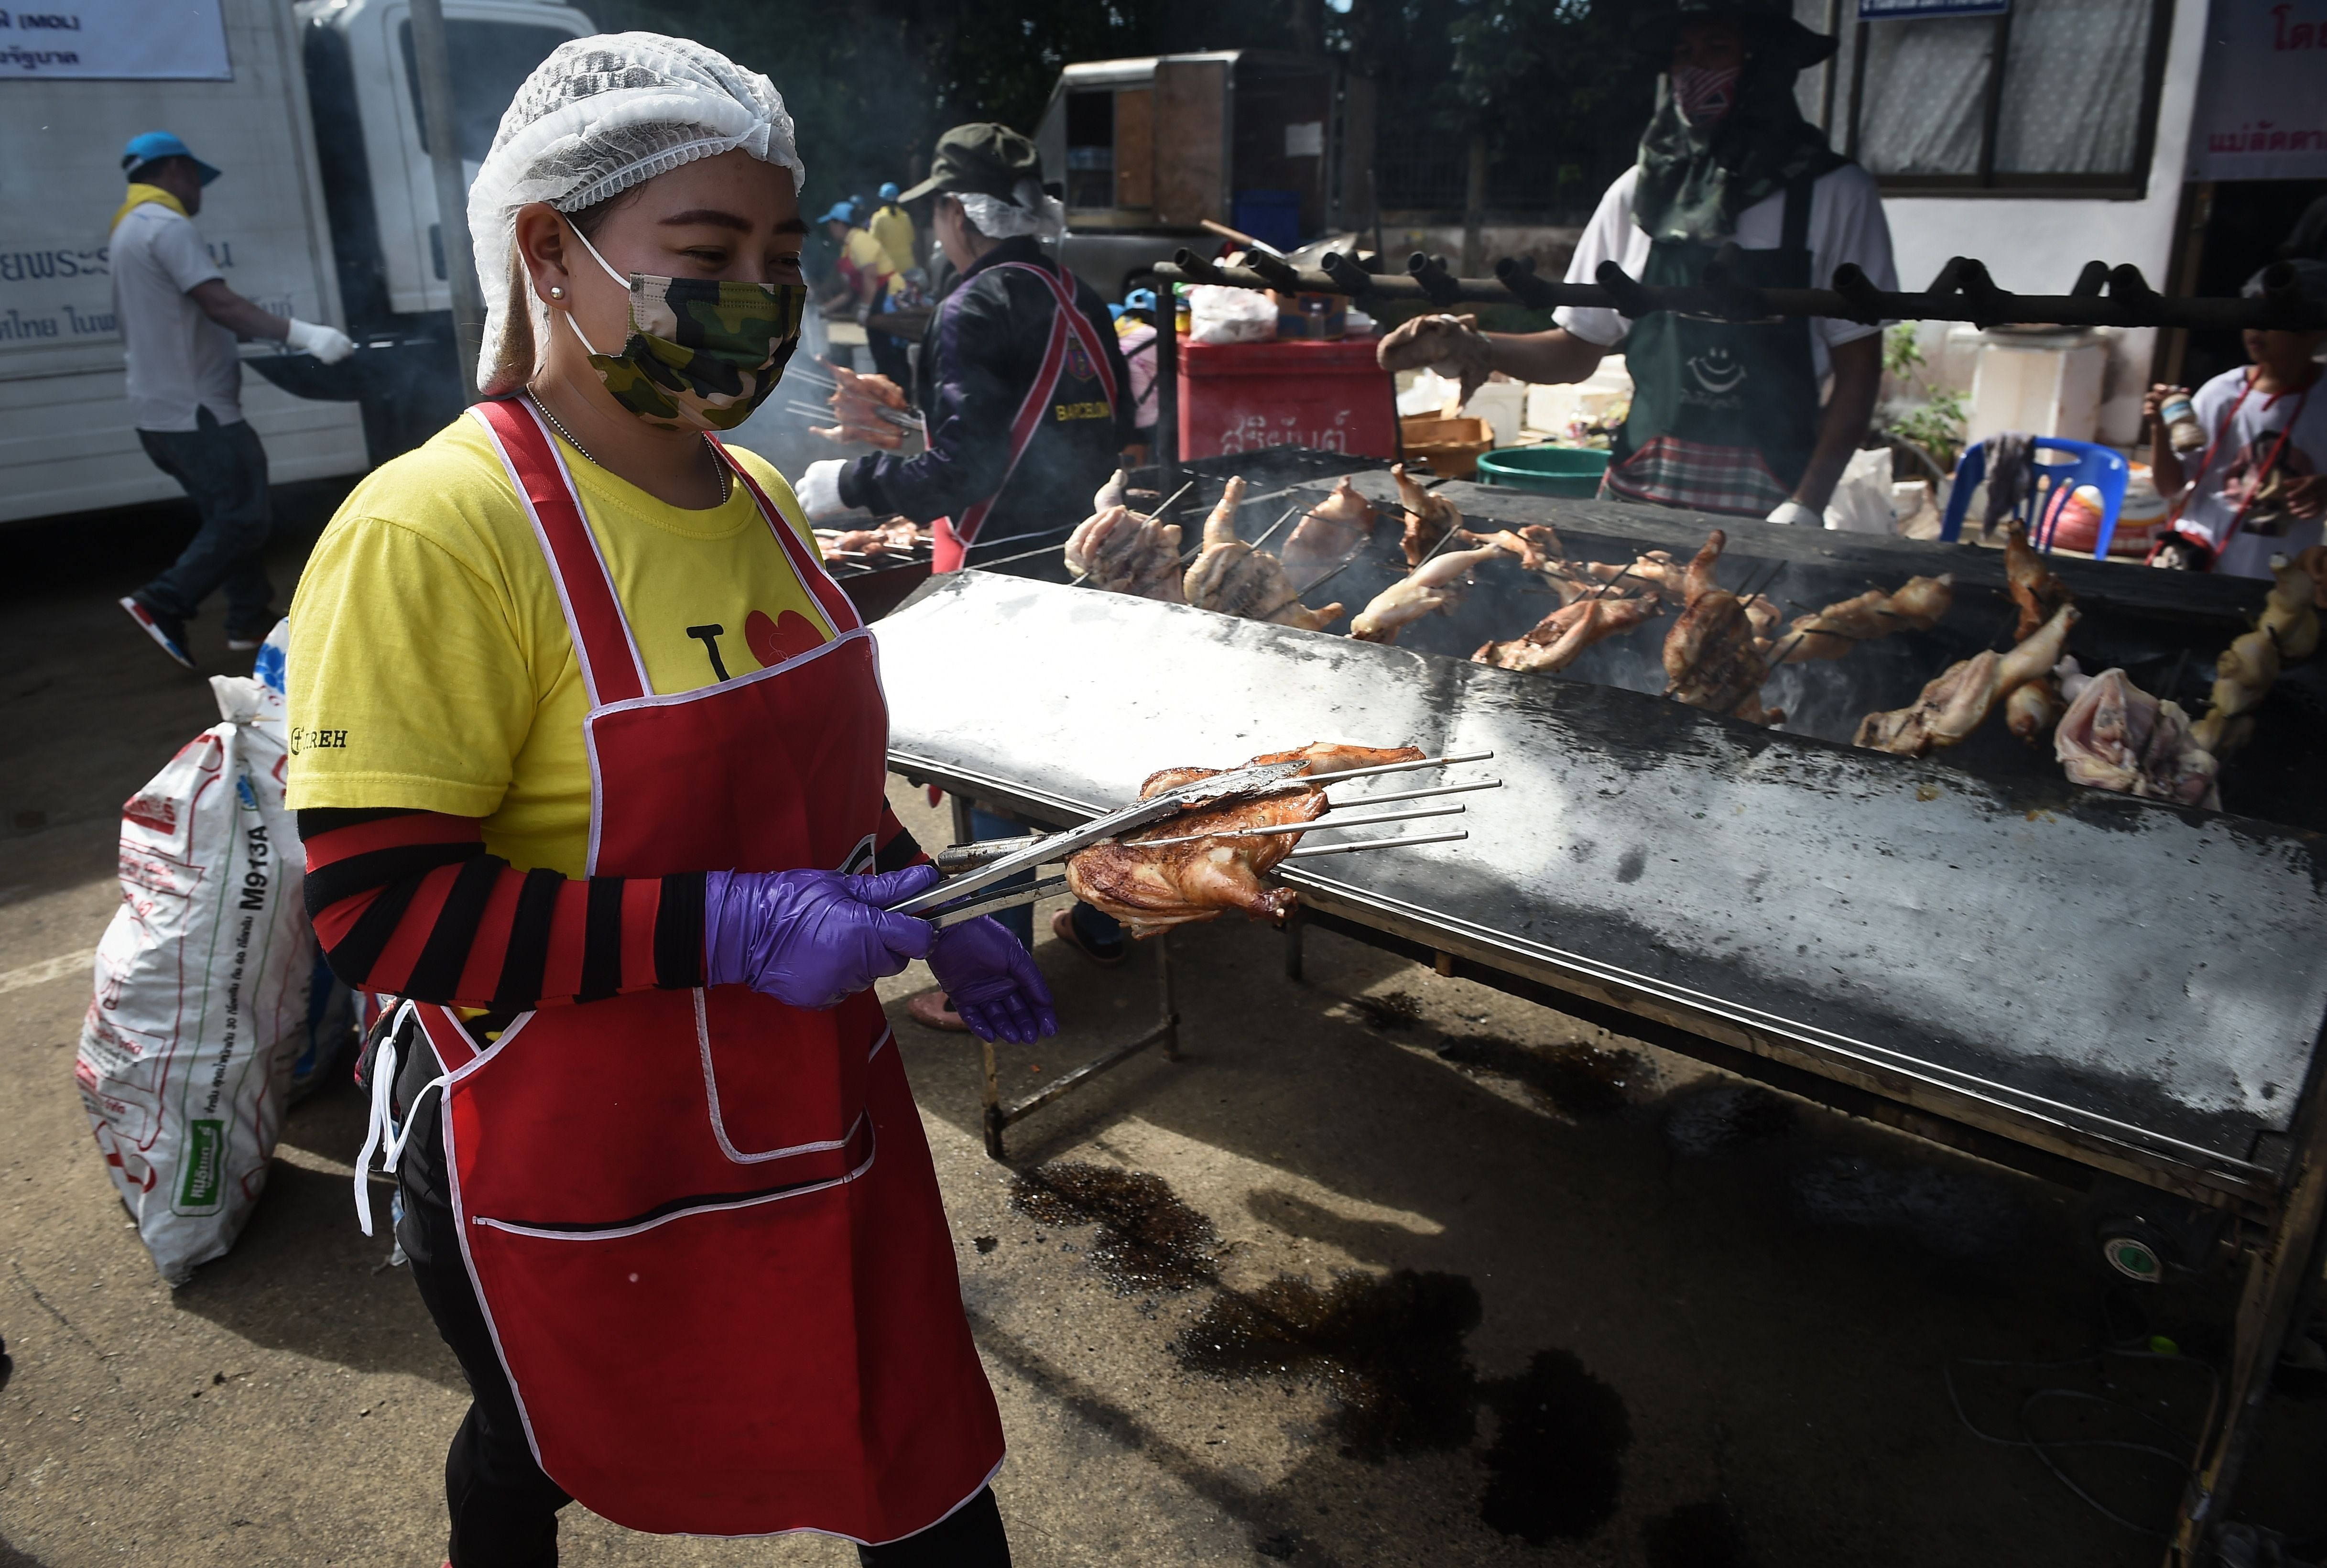 A woman cooks grilled chicken to be packed for volunteers and rescue personnel during a rescue operation.